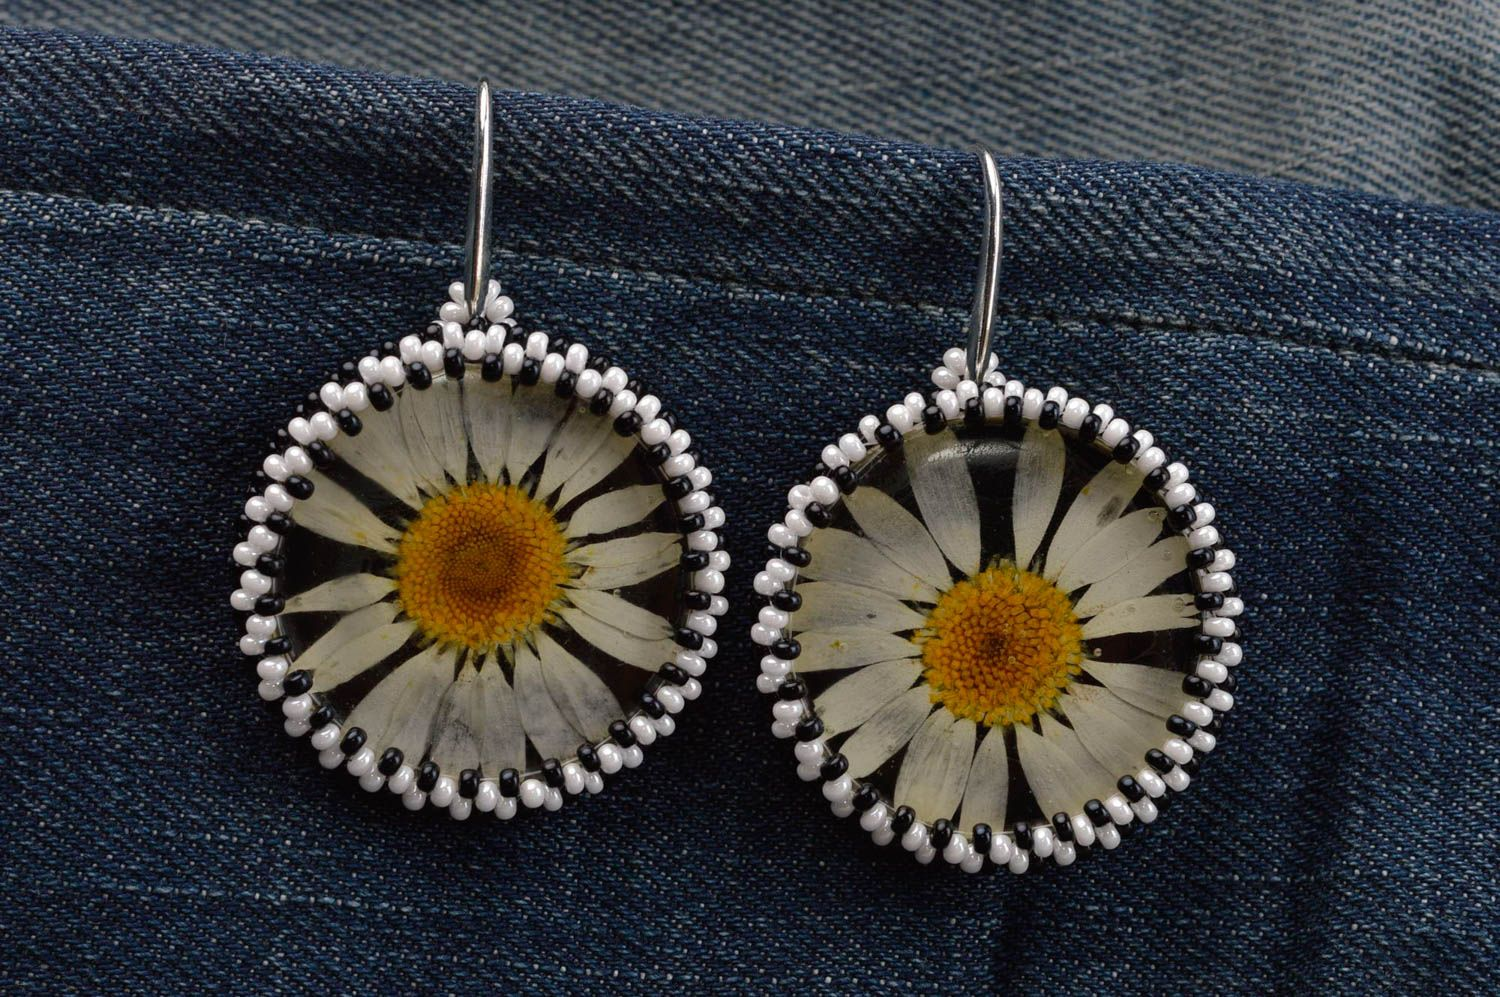 resin dry flower earrings Beautiful handmade botanical earrings beaded earrings fashion trends for her - MADEheart.com